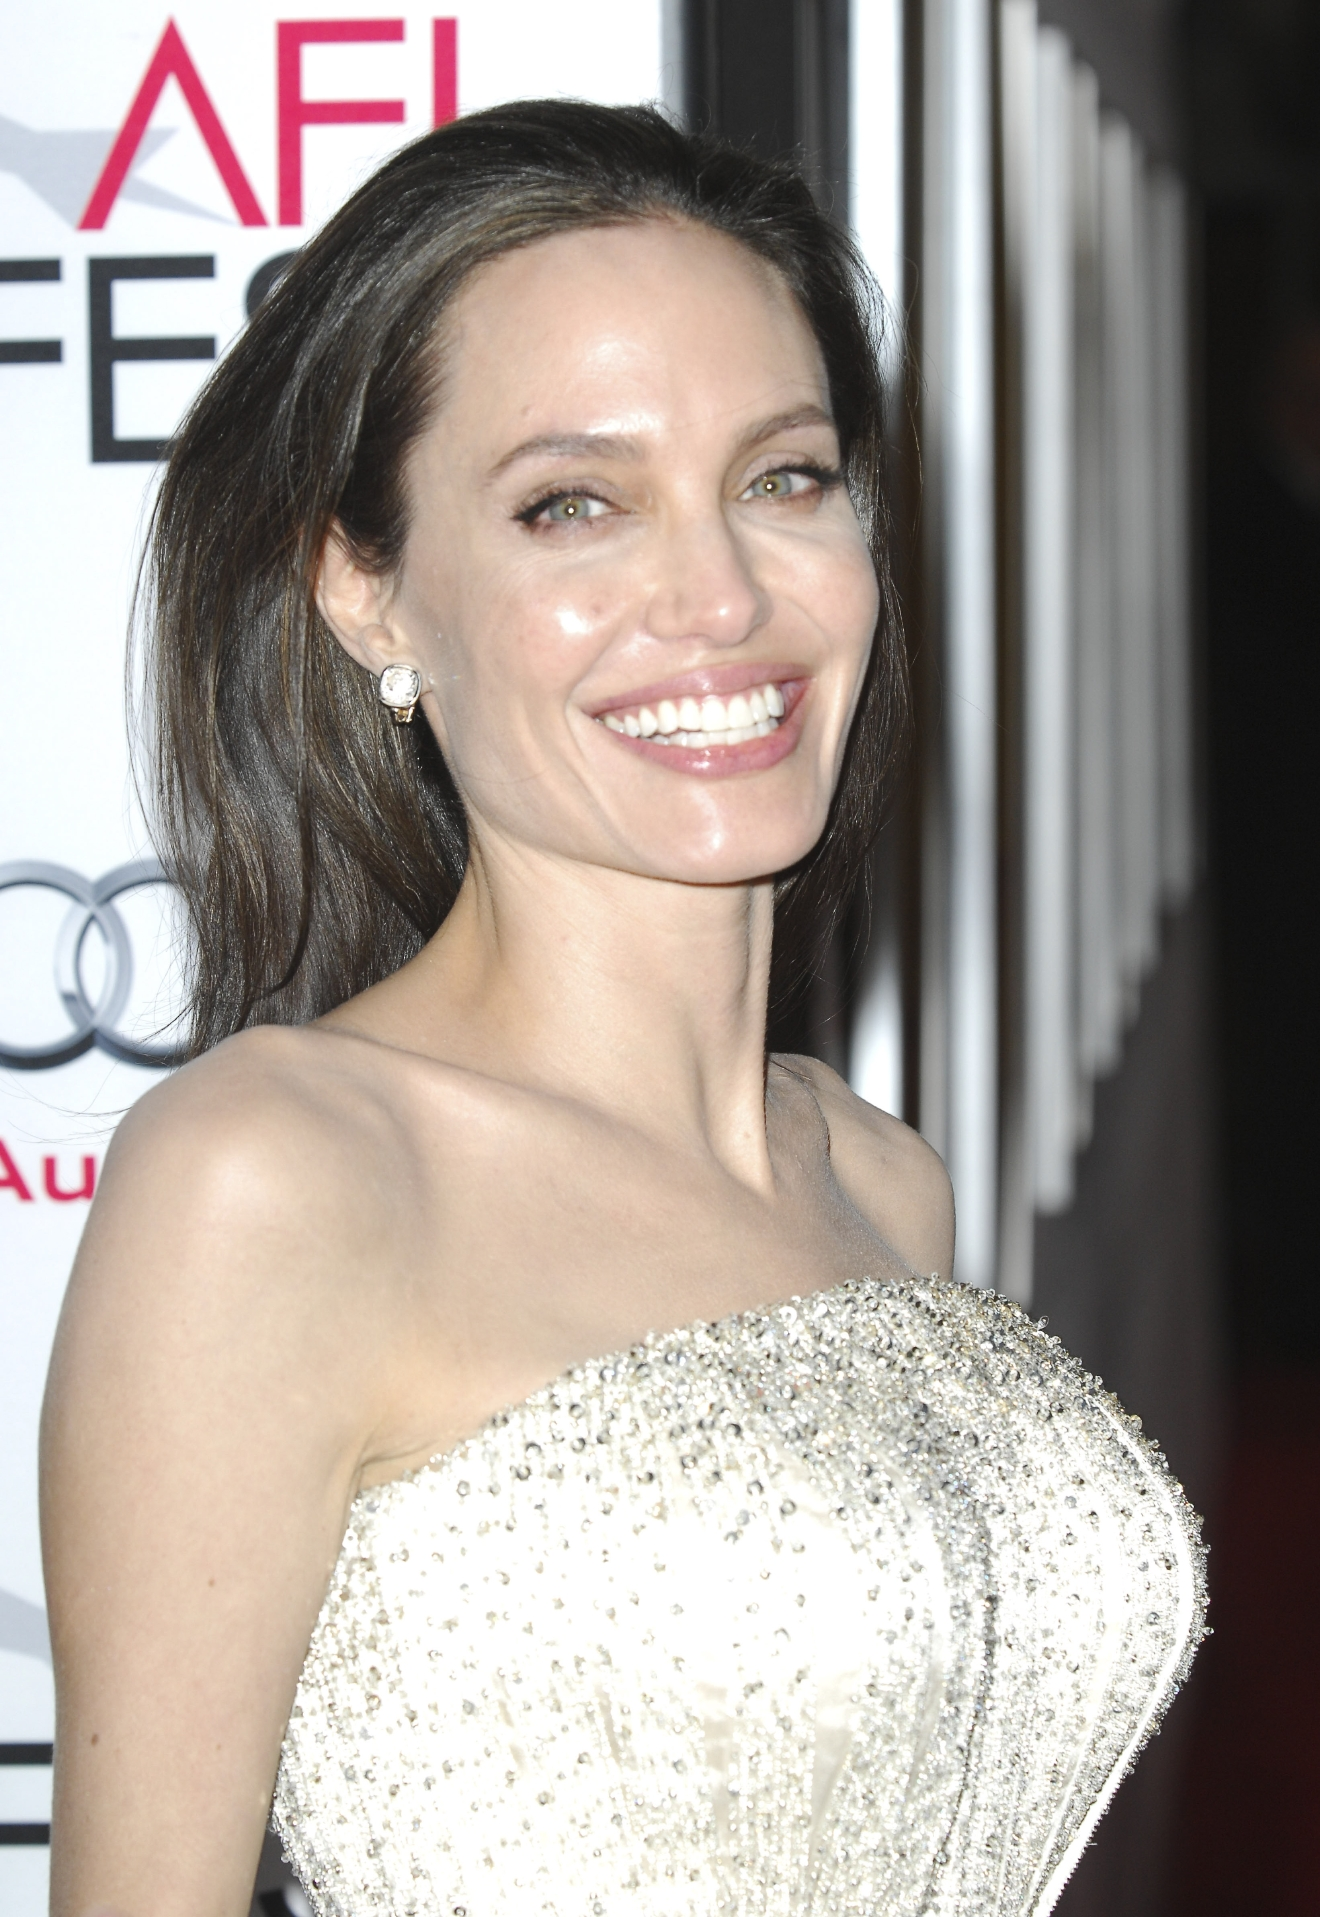 Film Premiere of By The Sea                                    Featuring: Angelina Jolie                  Where: Los Angeles, California, United States                  When: 06 Nov 2015                  Credit: Apega/WENN.com